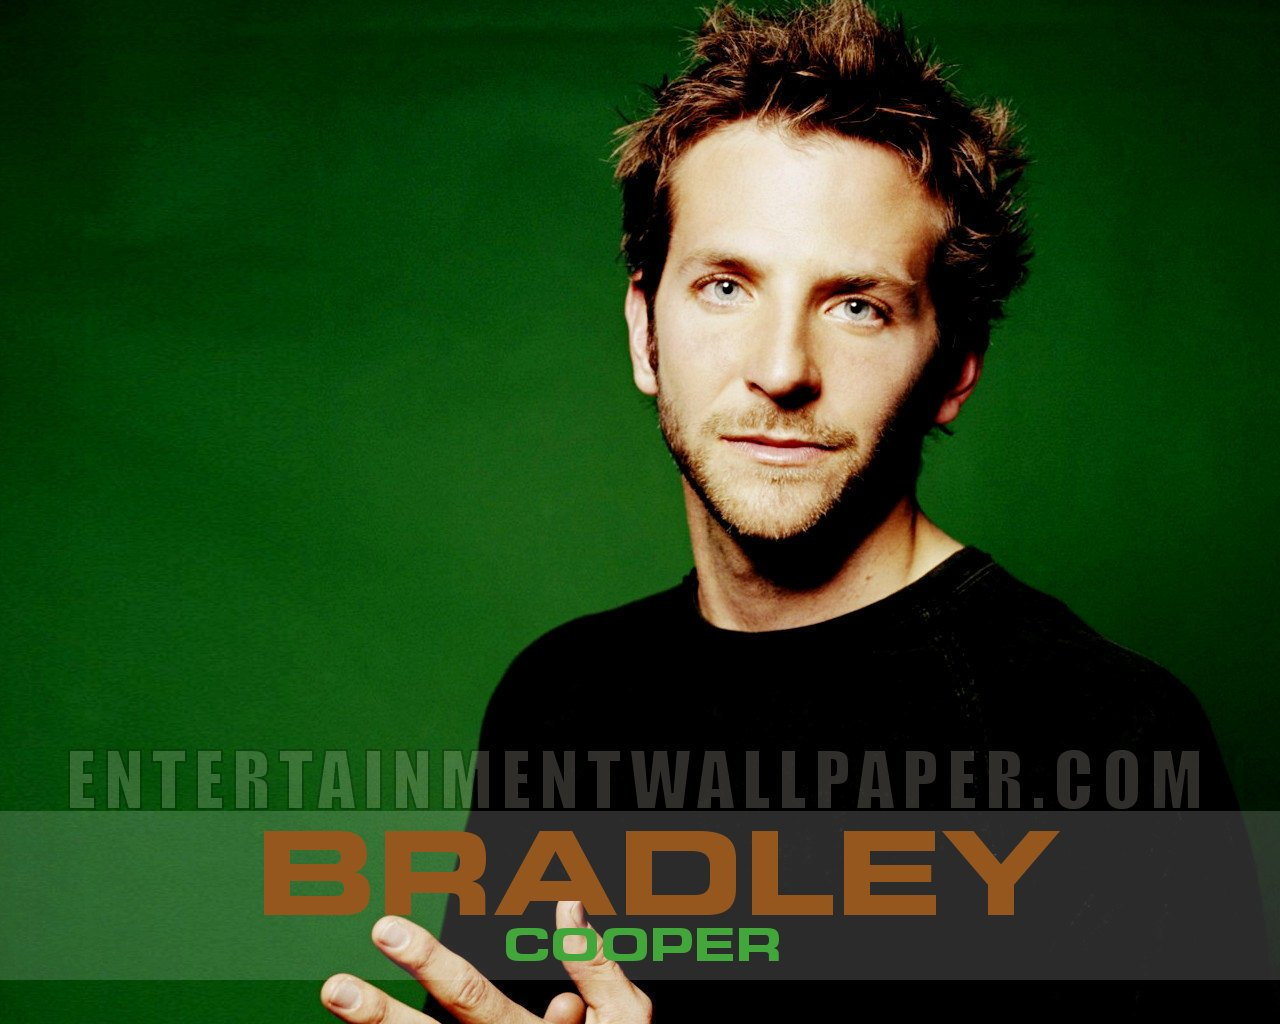 Lovella Licznar bradley cooper wallpaper hd 1280x1024